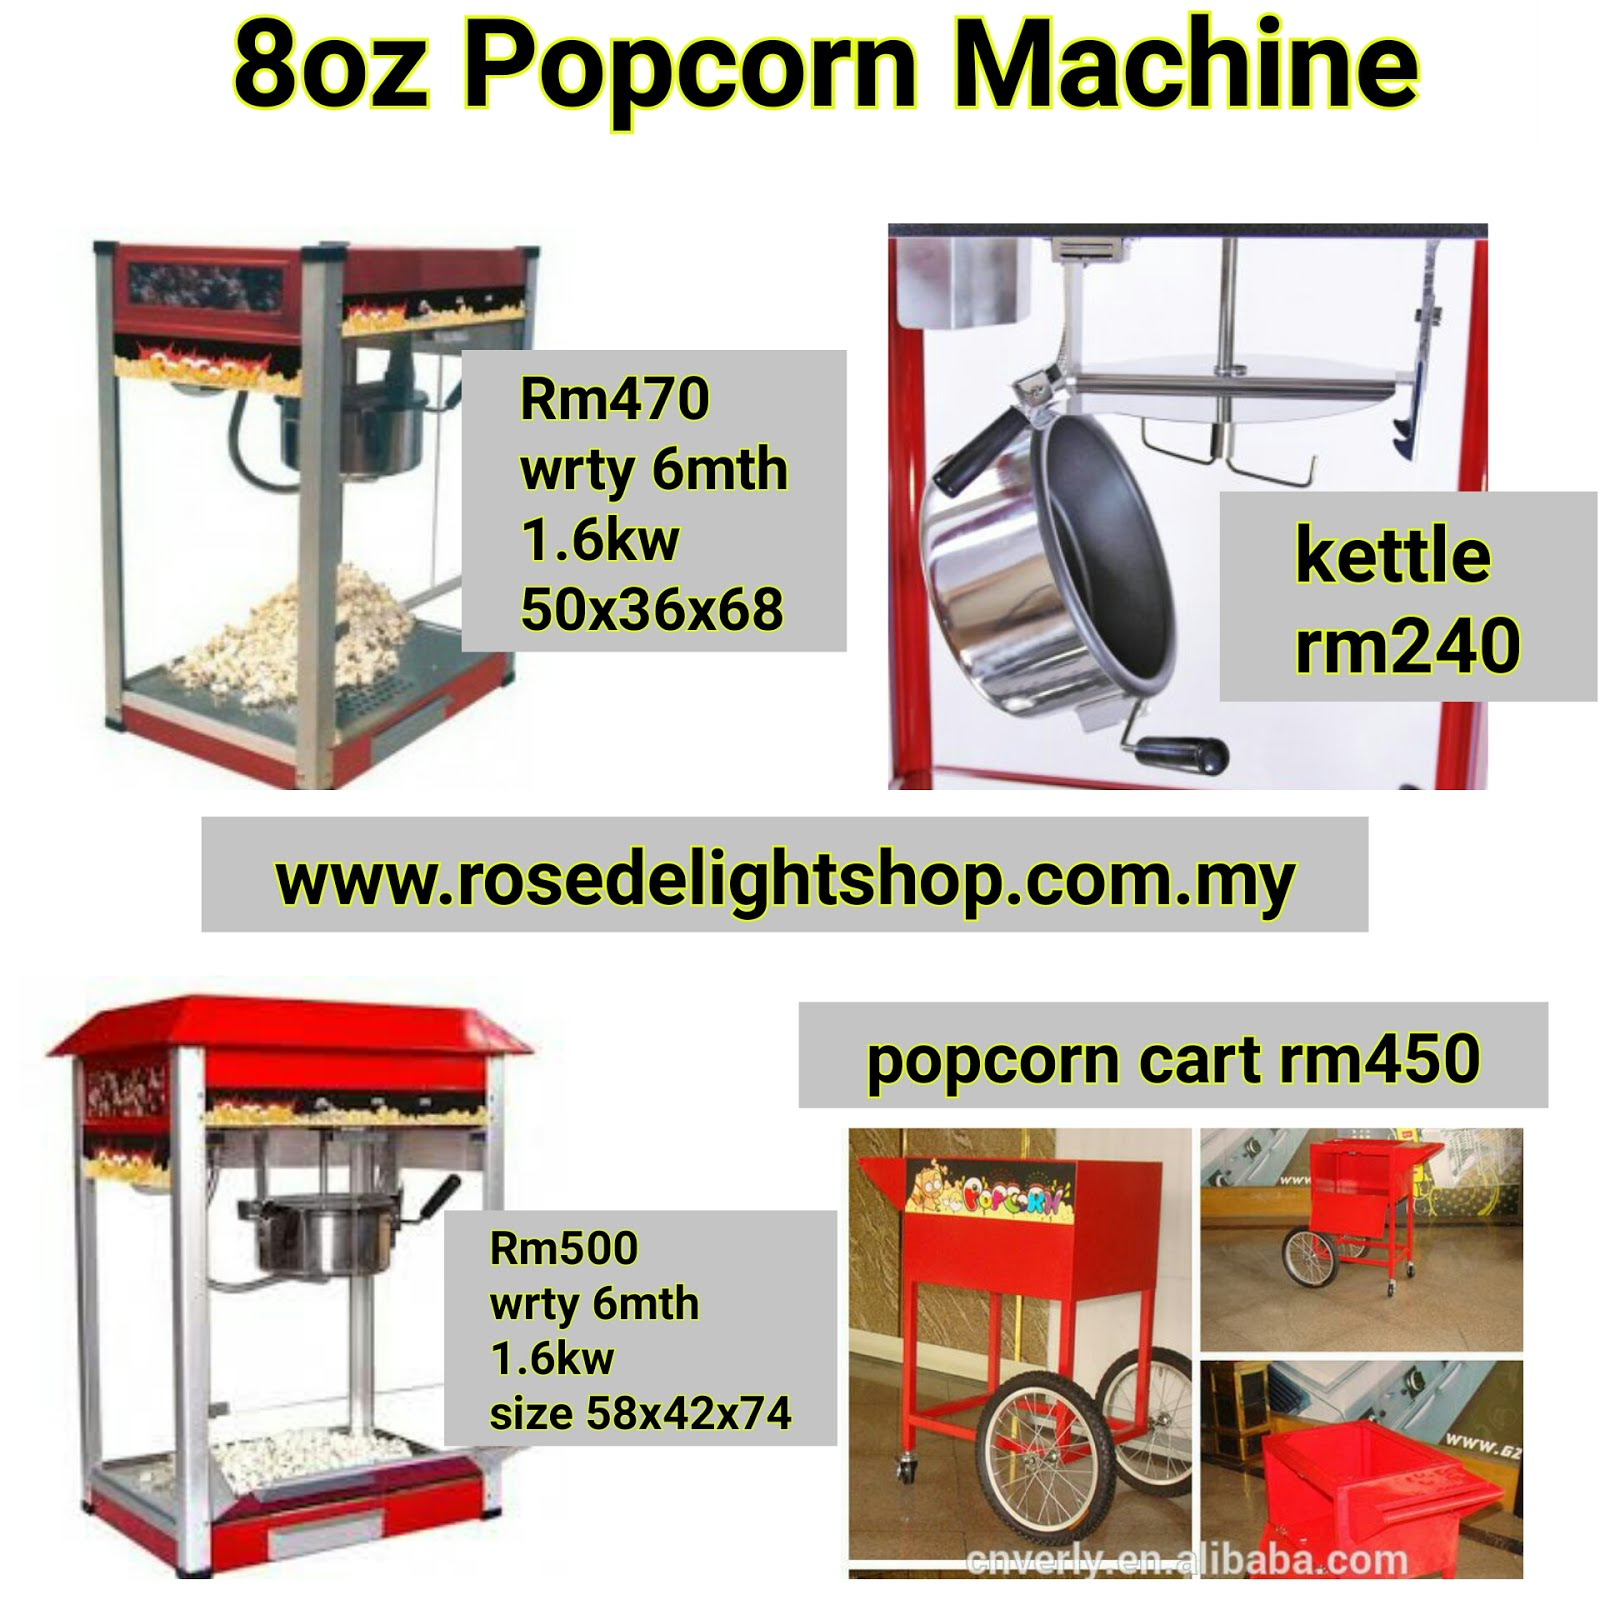 Kateloq Popcorn Machine